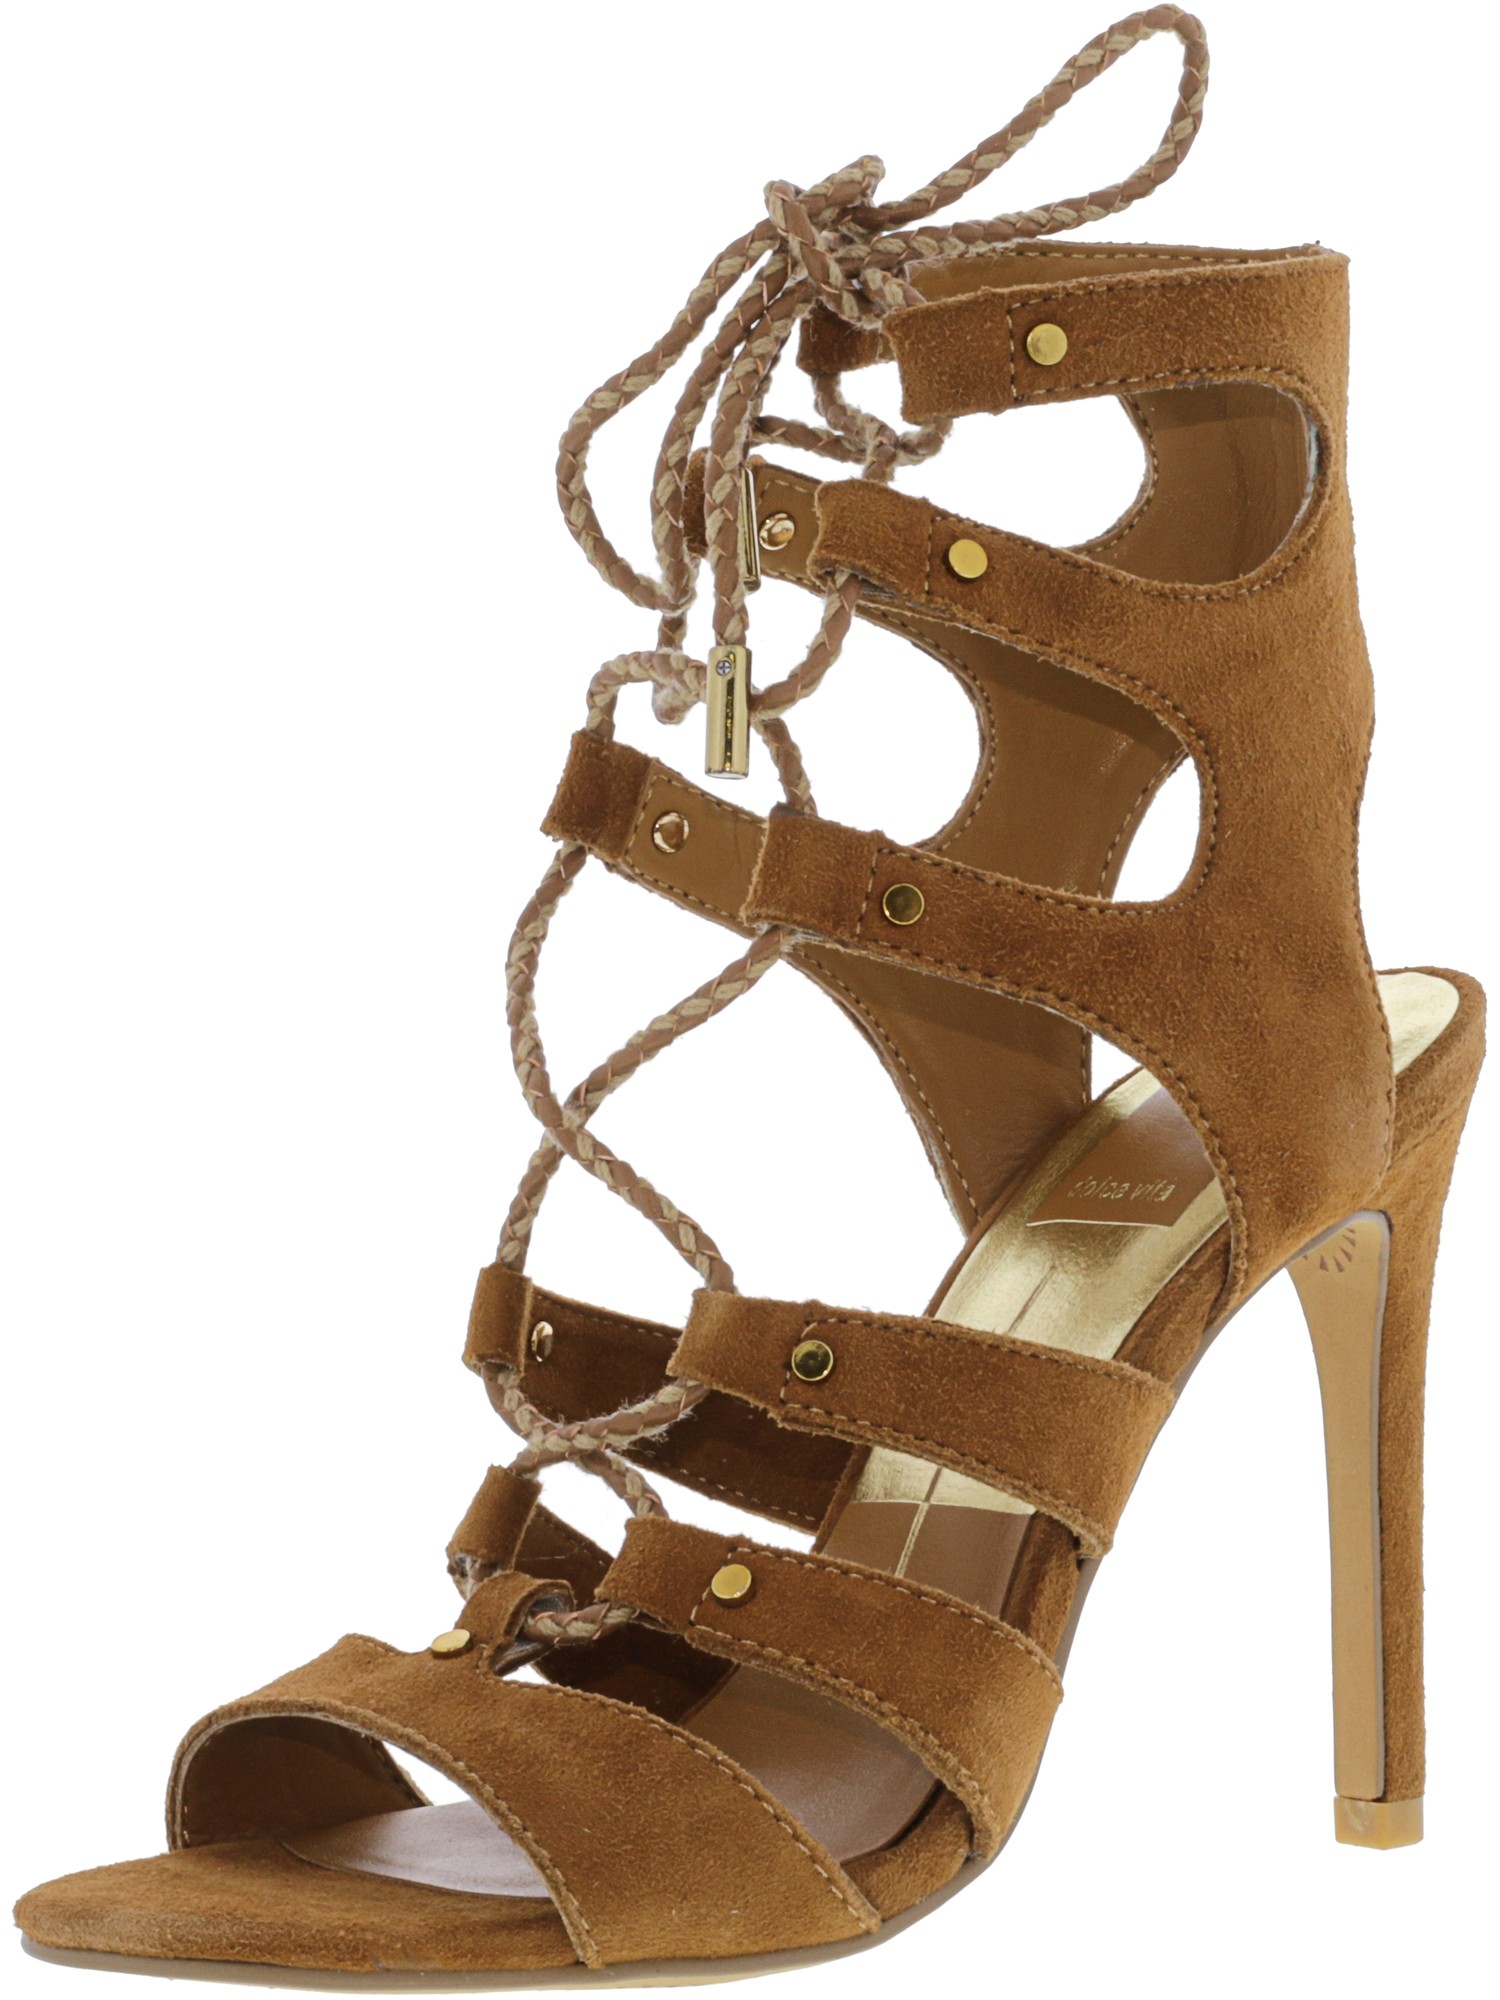 Dolce Vita Women's Howie Suede Dark Brown Ankle-High Pump - 8.5M